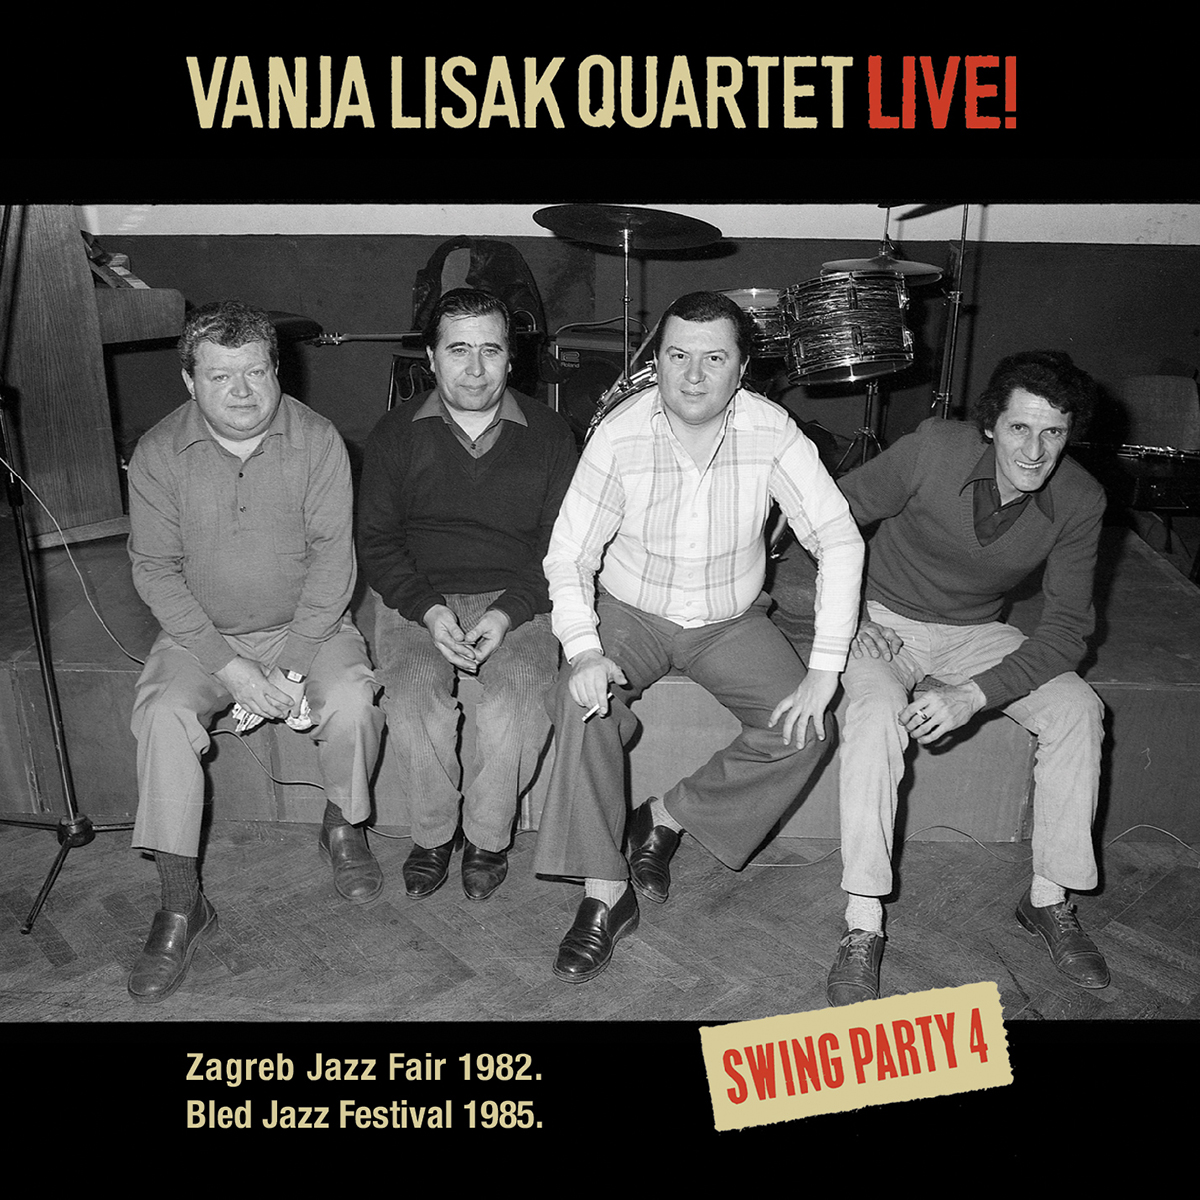 VANJA LISAK QUARTET - Live! (Swing Party 4)